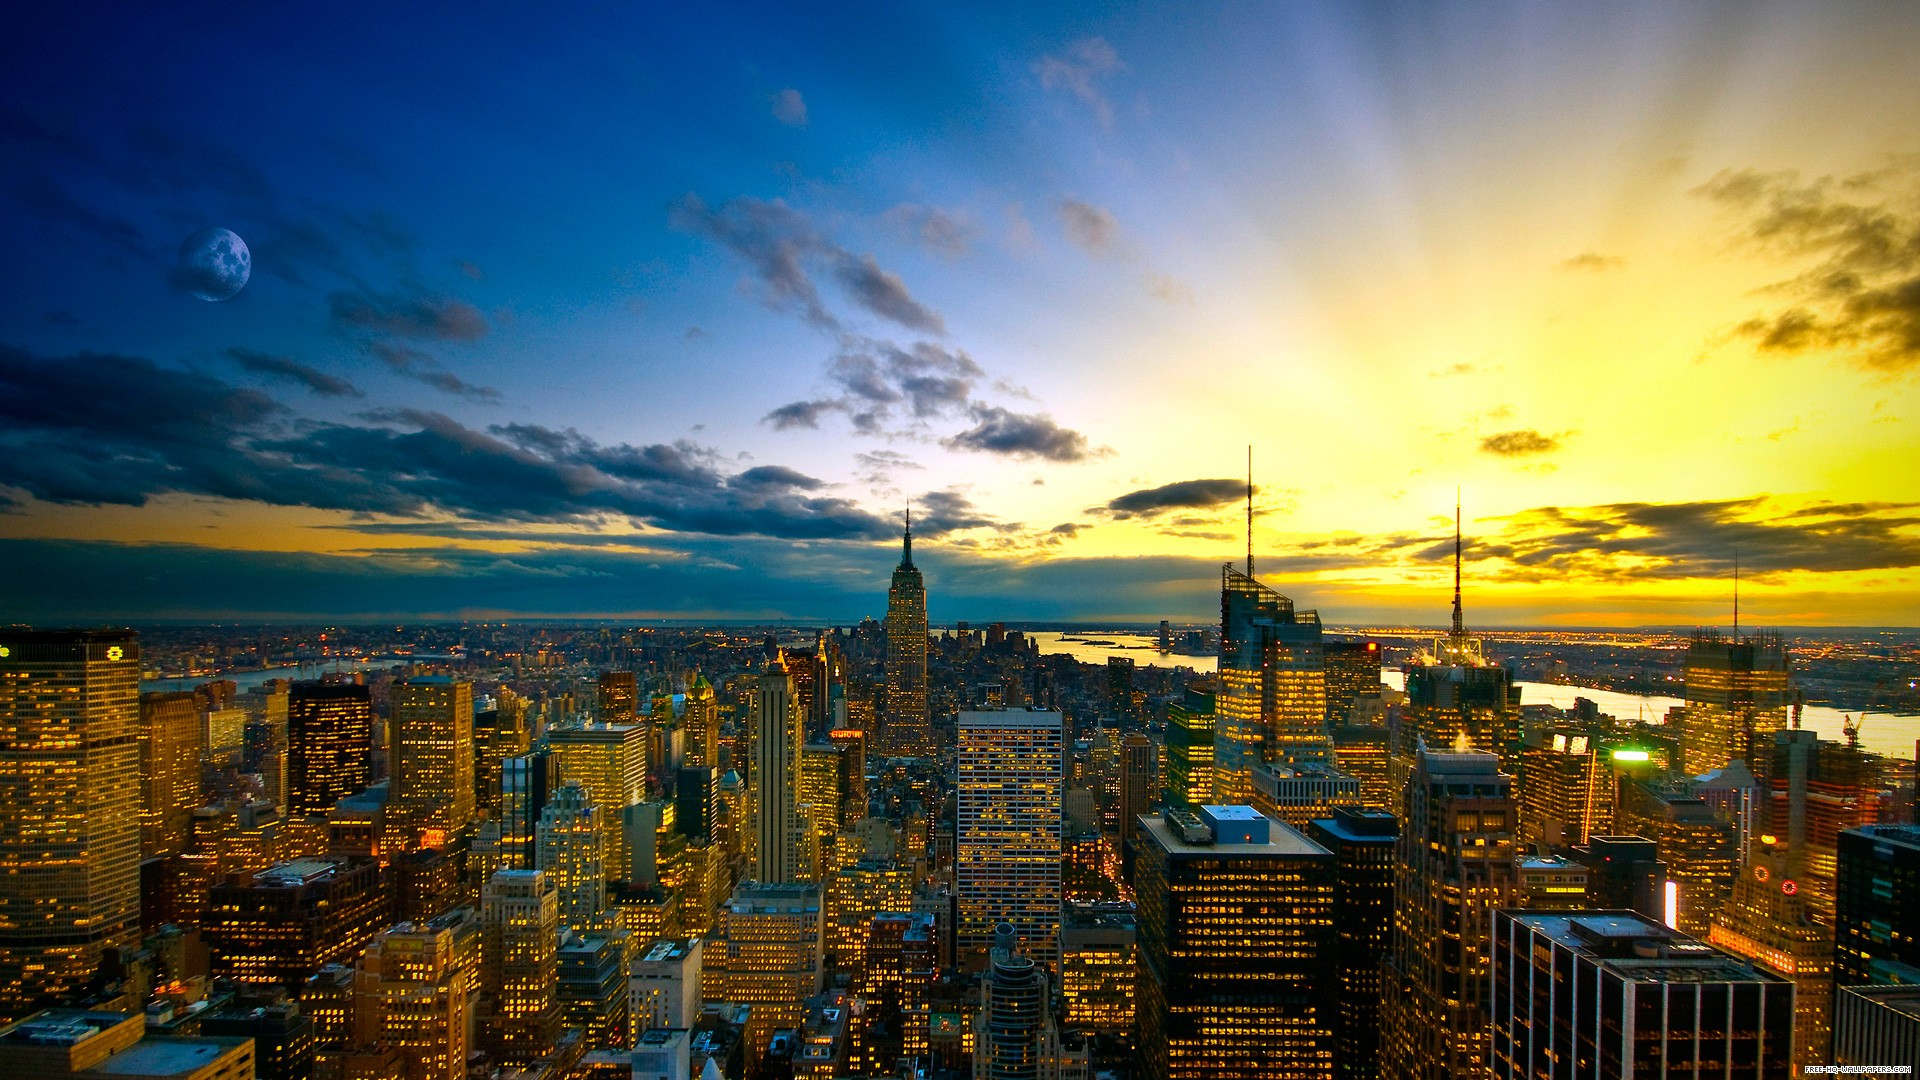 40 hd new york city wallpapers backgrounds for free download for In the city wallpaper